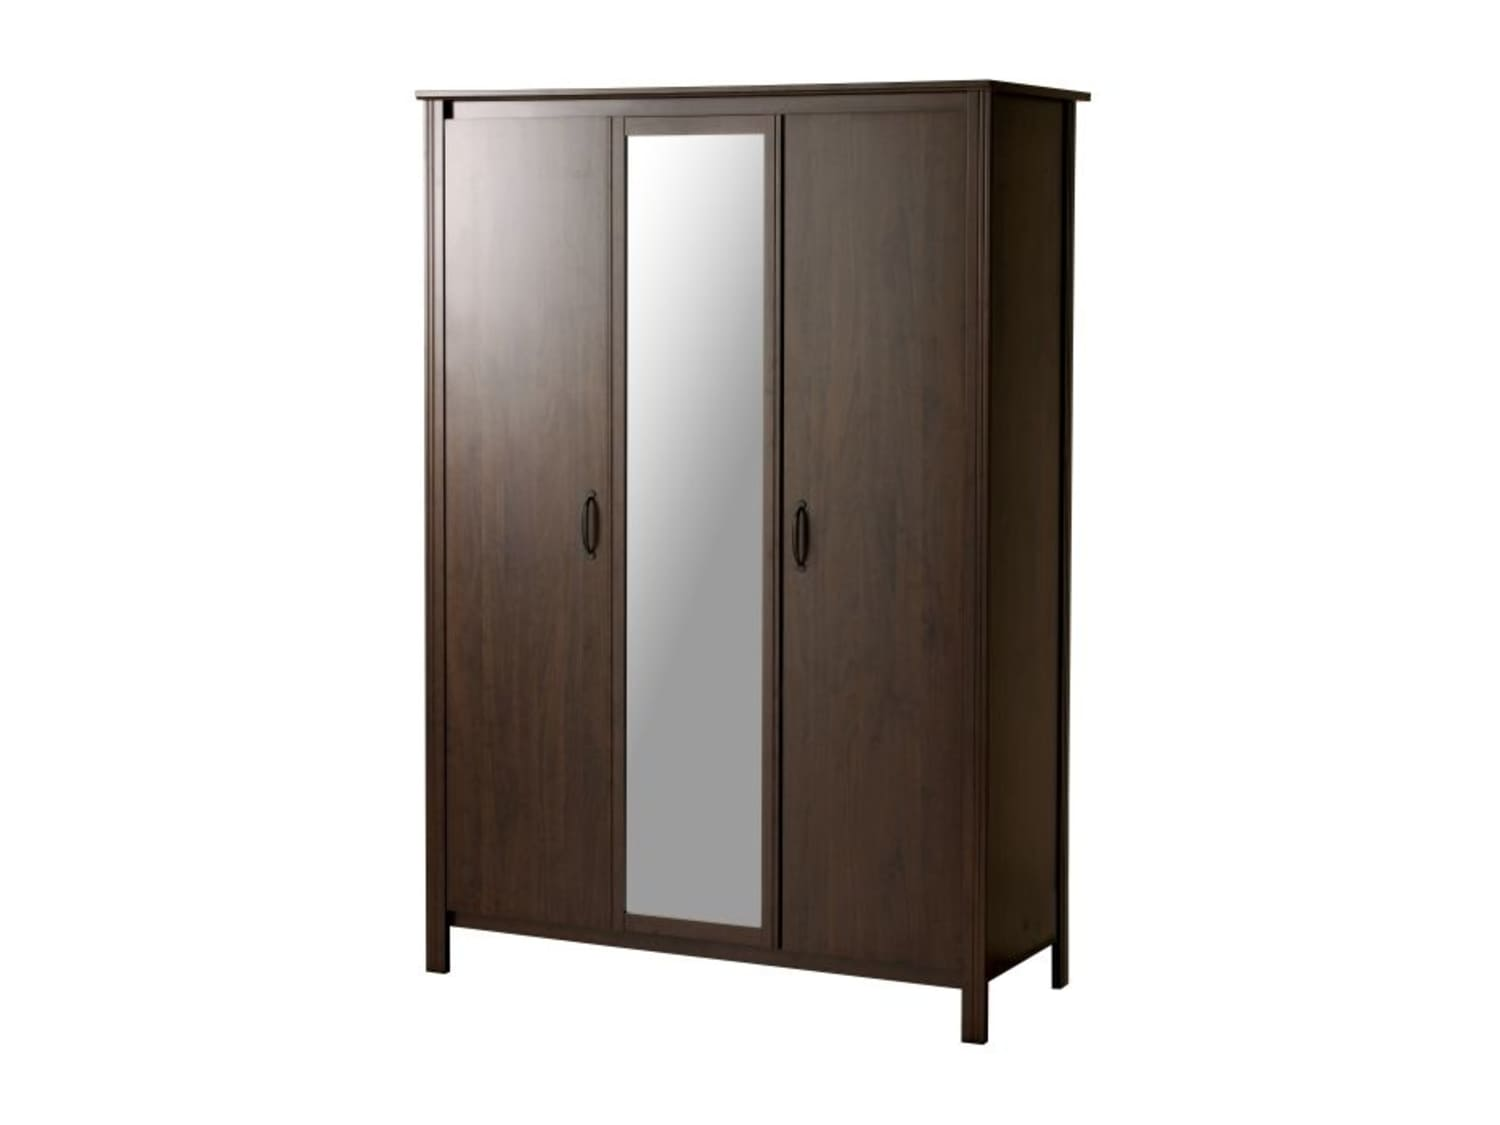 Ikea Brusali Wardrobe With 3 Doors Mirror Apartment Therapy S